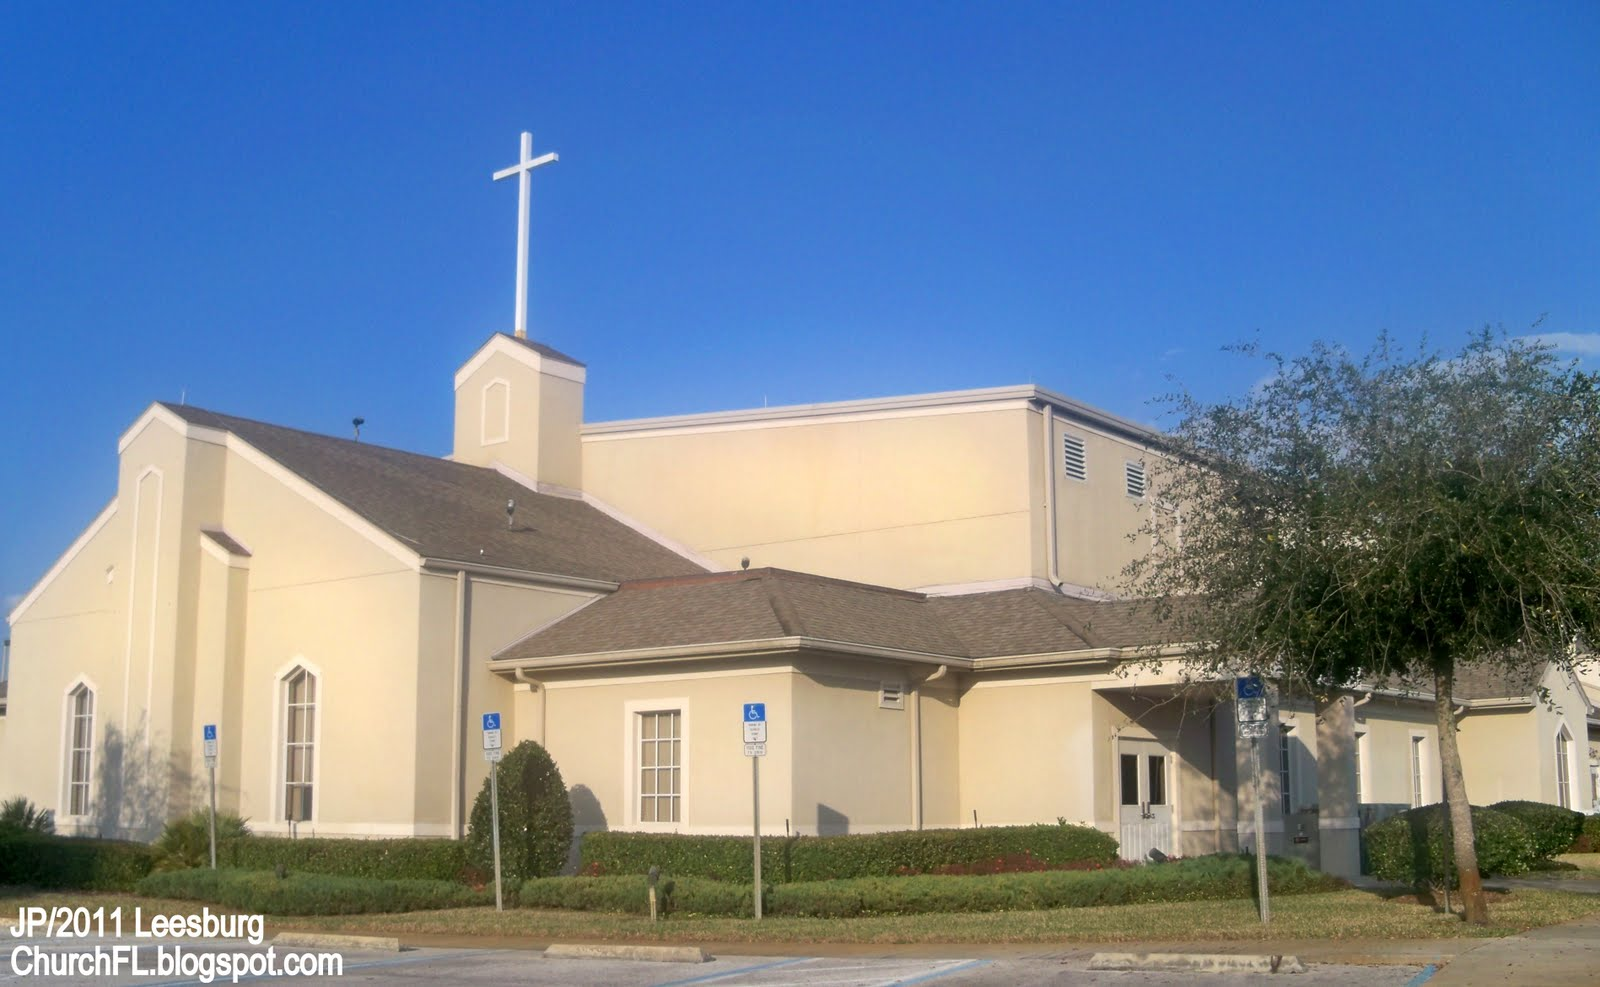 luke afb catholic girl personals Luke afb's best 100% free christian girls dating site meet thousands of single christian women in luke afb with mingle2's free personal ads and chat rooms our network of christian women in luke afb is the perfect place to make church friends or find an christian girlfriend in luke afb.